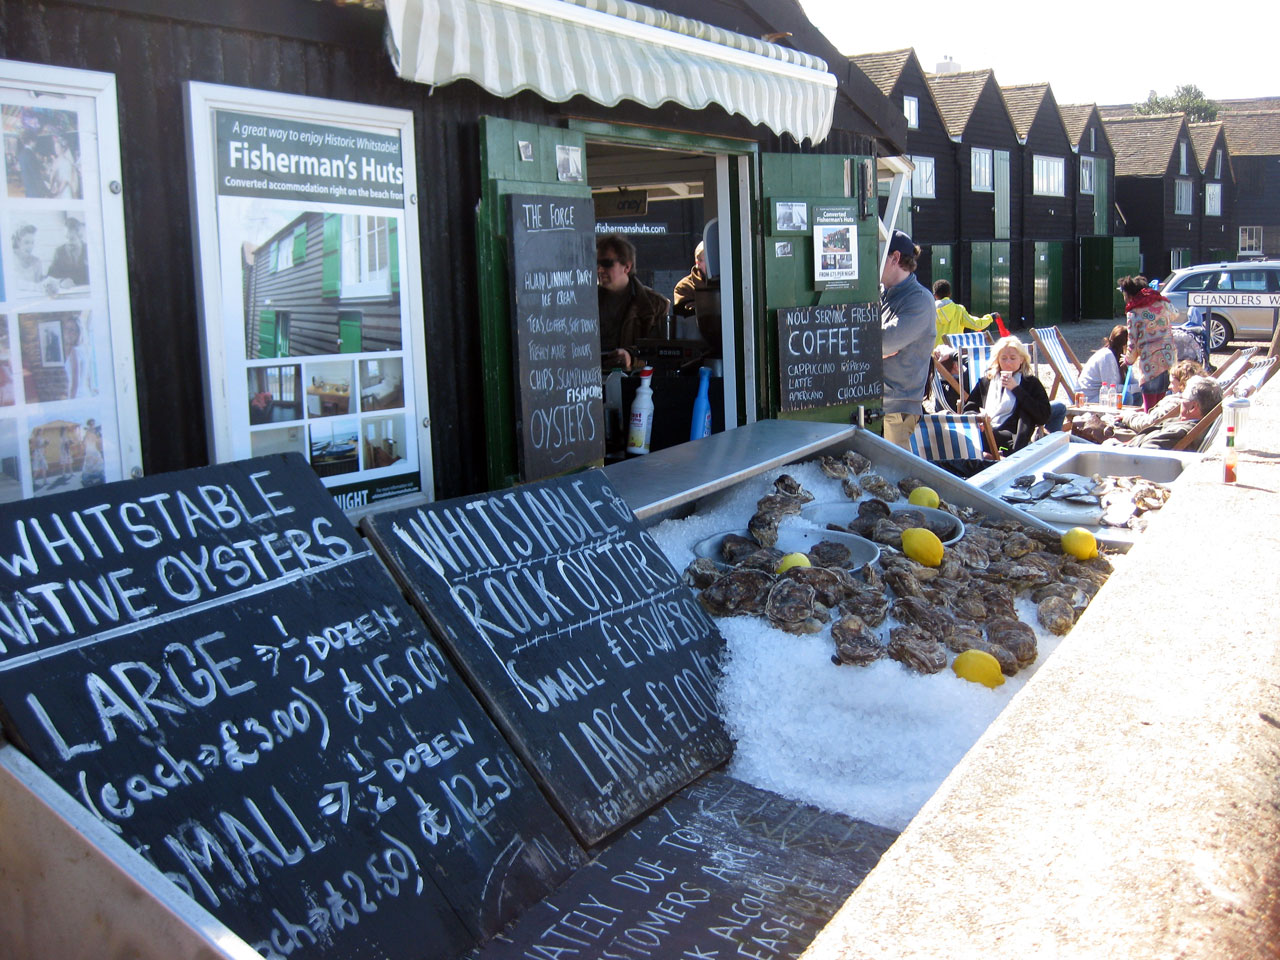 Oysters for sale in Whitstable, Kent